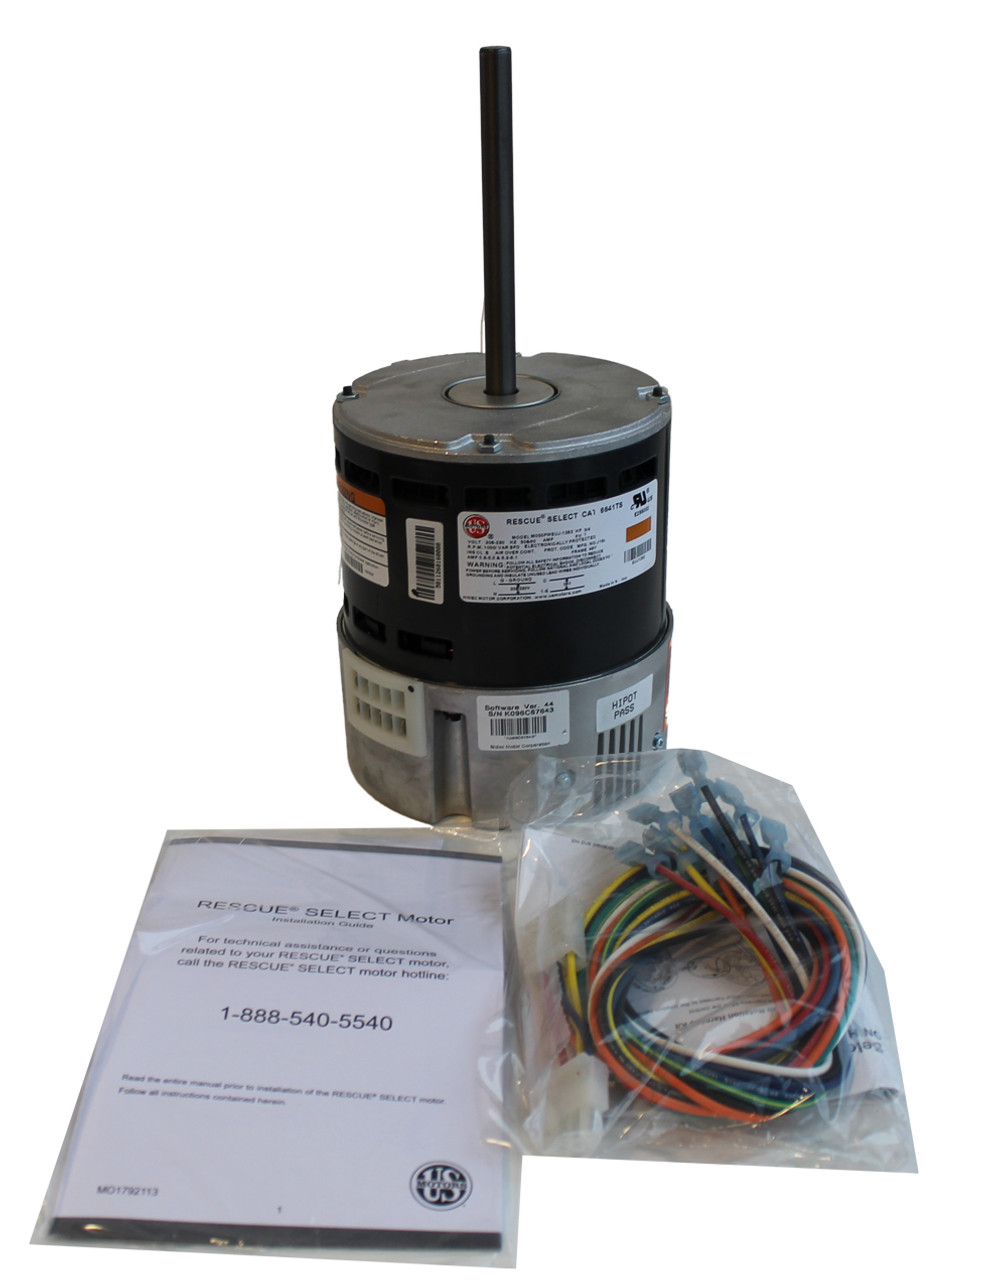 6641TS - Rescue Truck Stock Blower Motor, X-13 ECM, Variable Speed, 1050  RPM, 208-230 V, 6 3-6 1 Amps, 3/4 HP